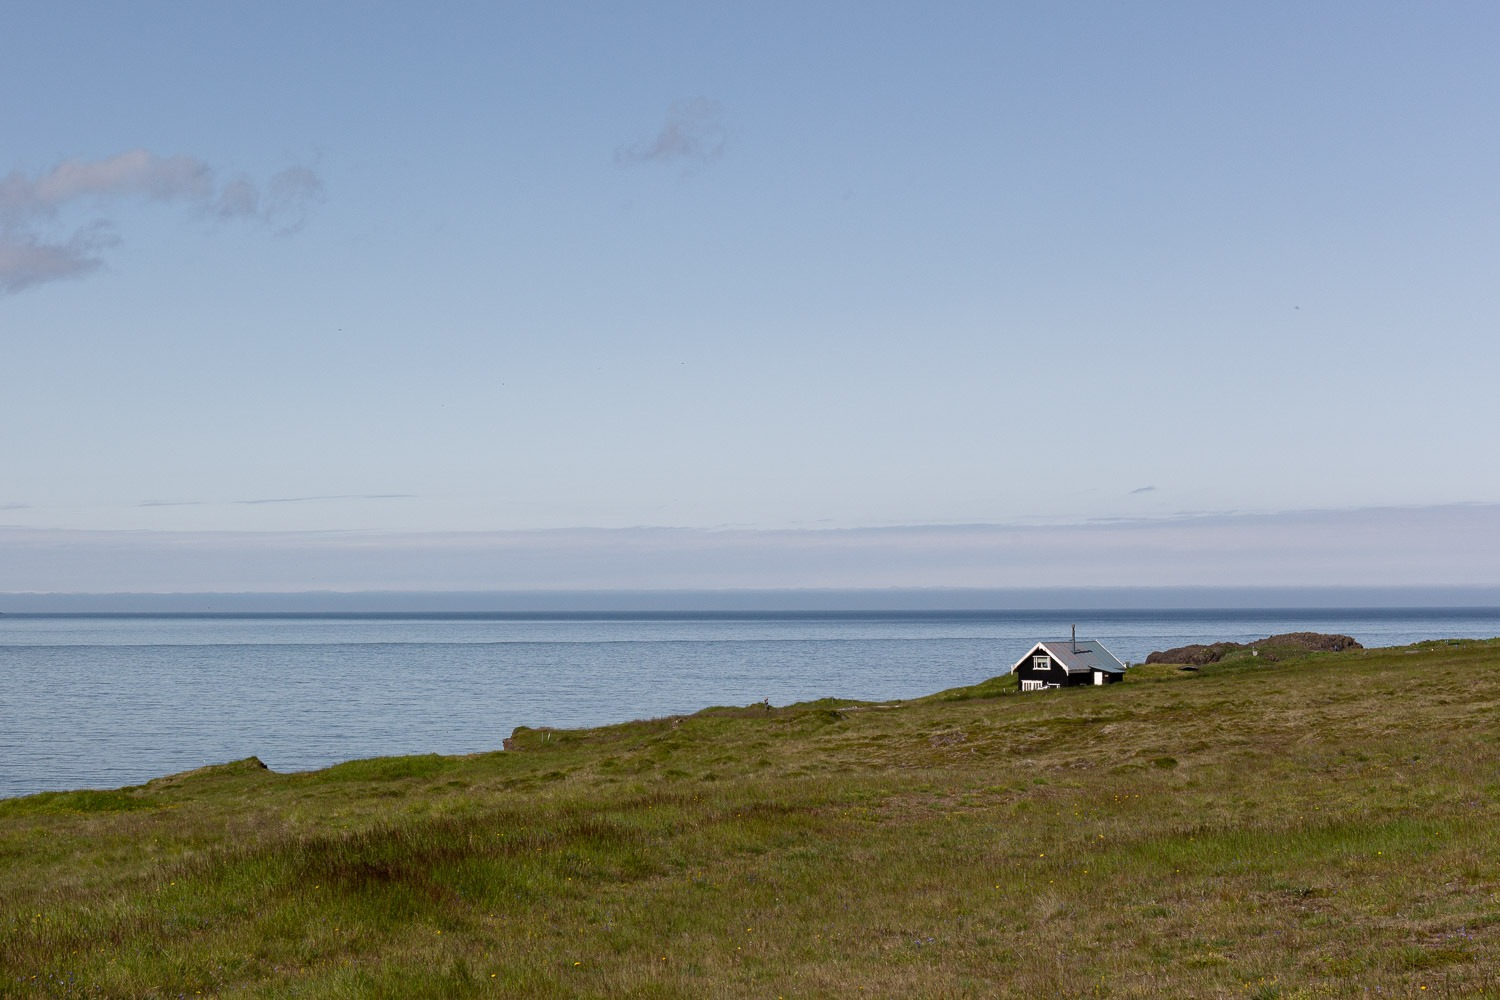 A small house on a cliff top in Iceland with water behind